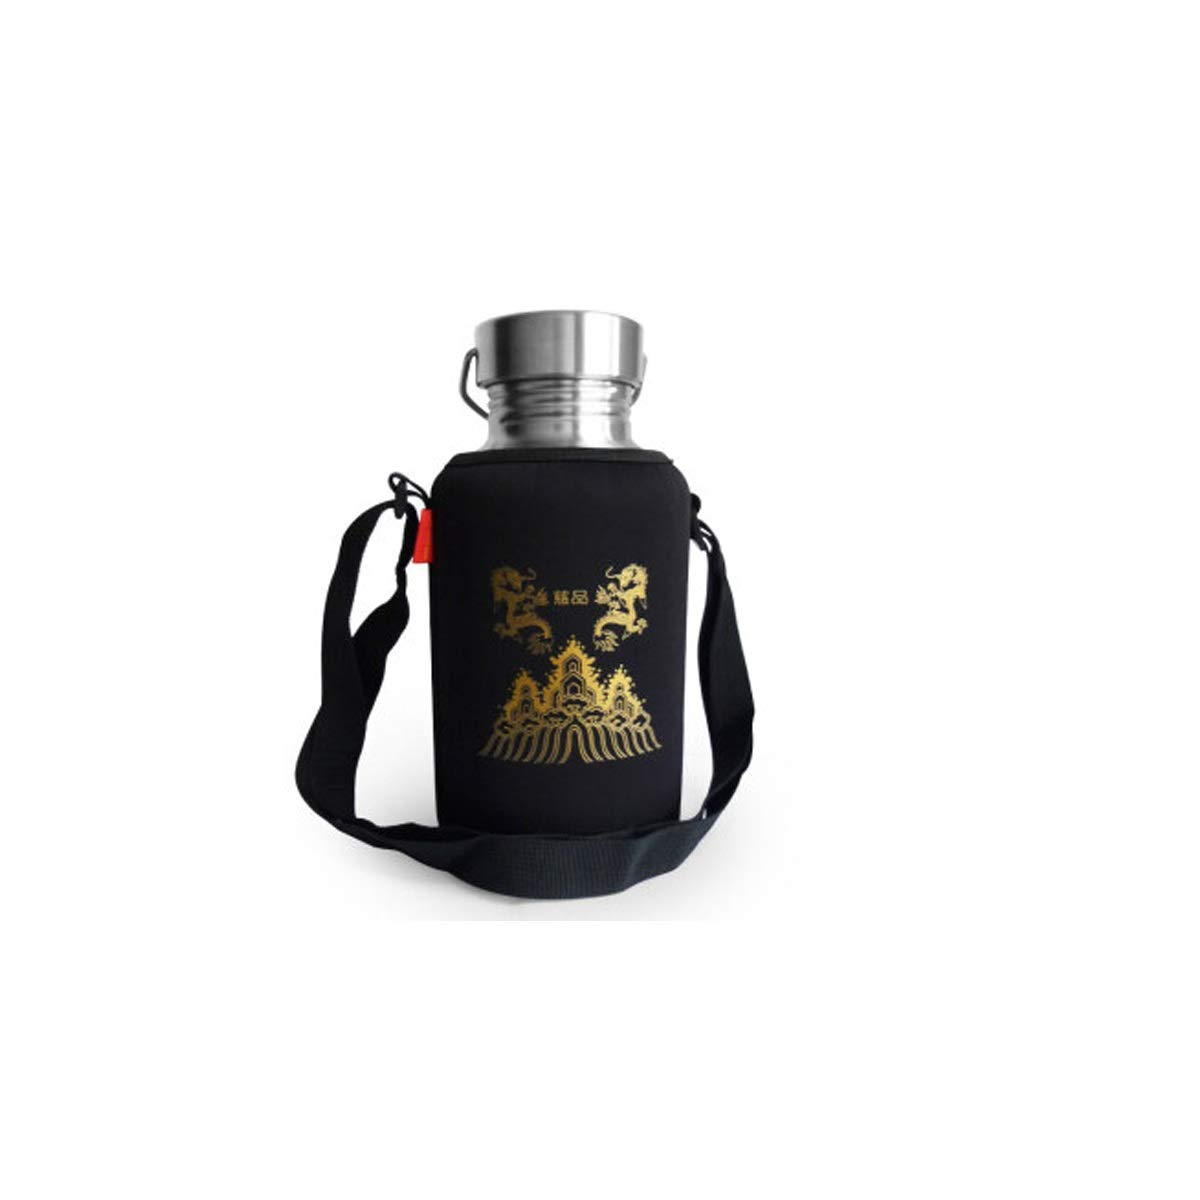 Tongboshi 304 Stainless Steel 2000ml Large Capacity Kettle, 2L Outdoor Military Training Sports Kettle Cup, Travel Climbing Pot, 2000ml All Steel Cup + Solid Color Cup Set - No Insulation